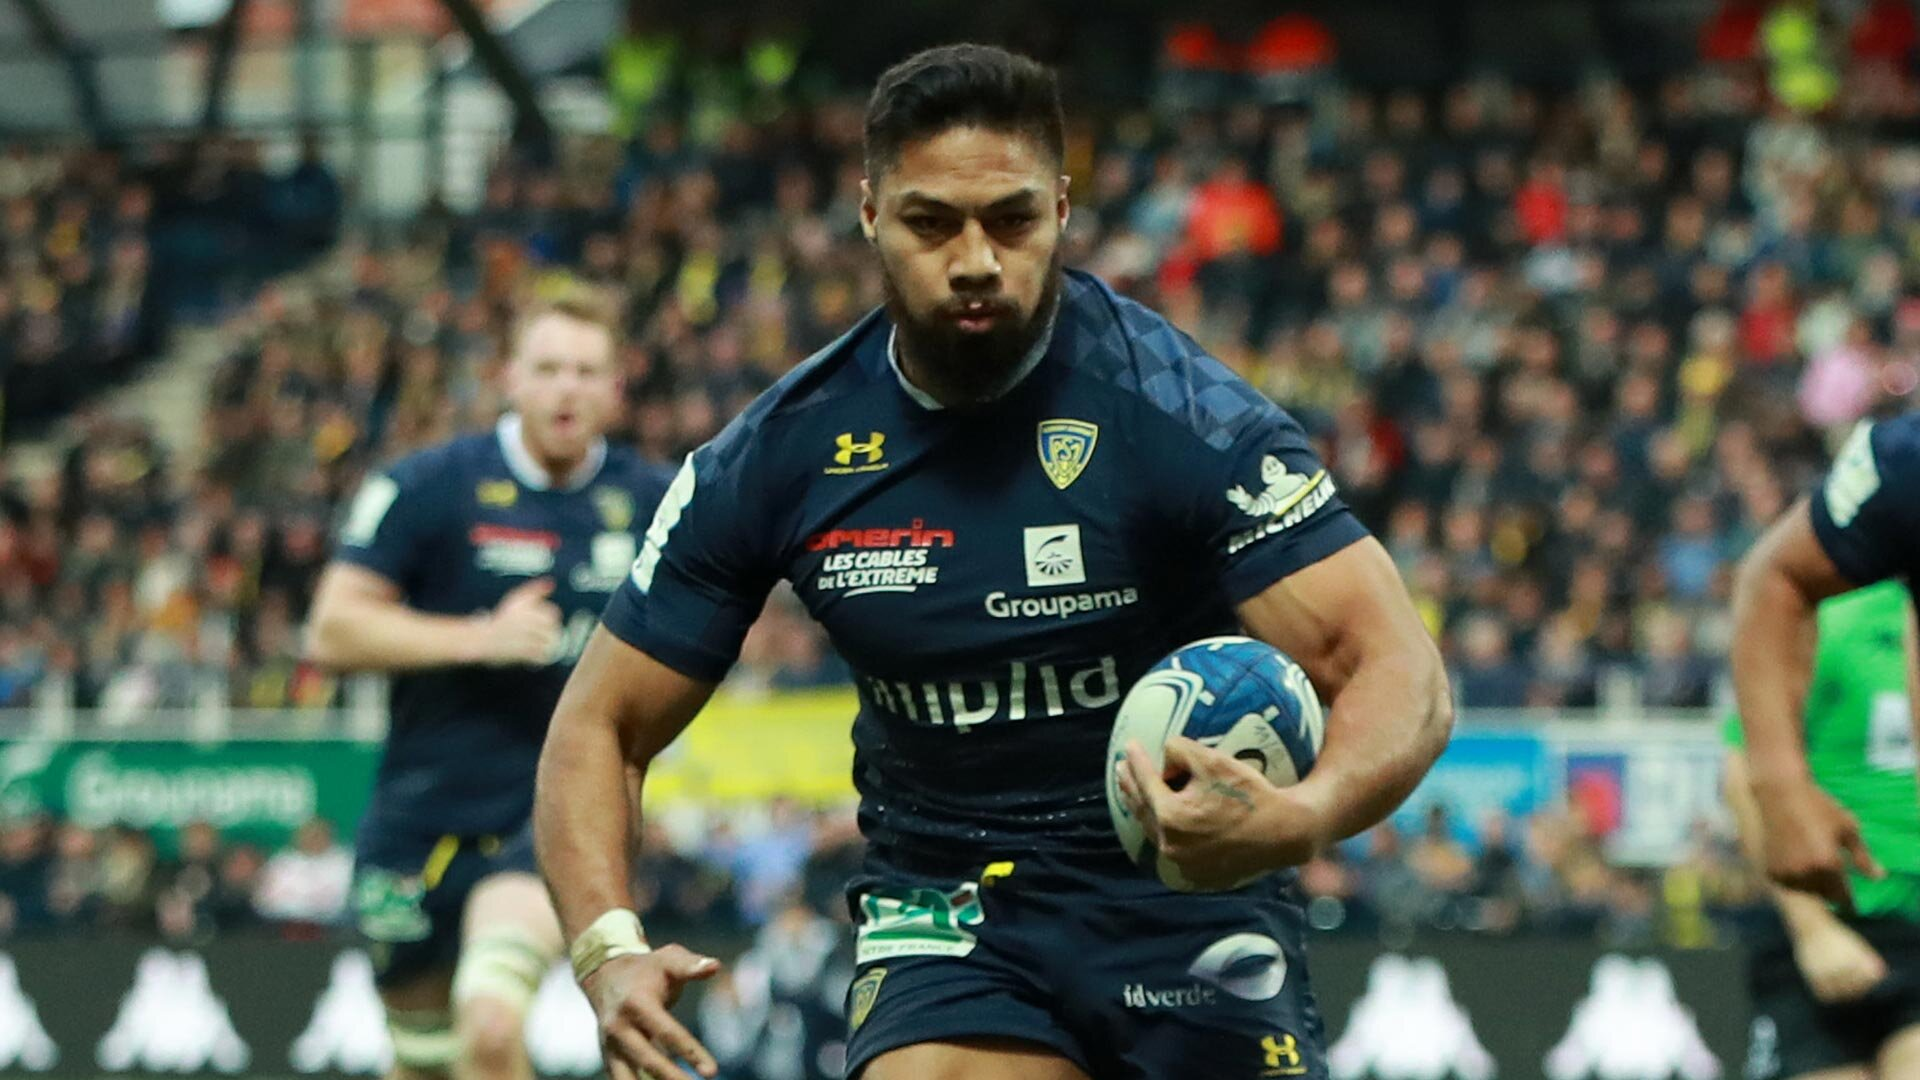 Kiwis in Europe: Clermont's ex-Pat contingent continue blistering run in Champions Cup